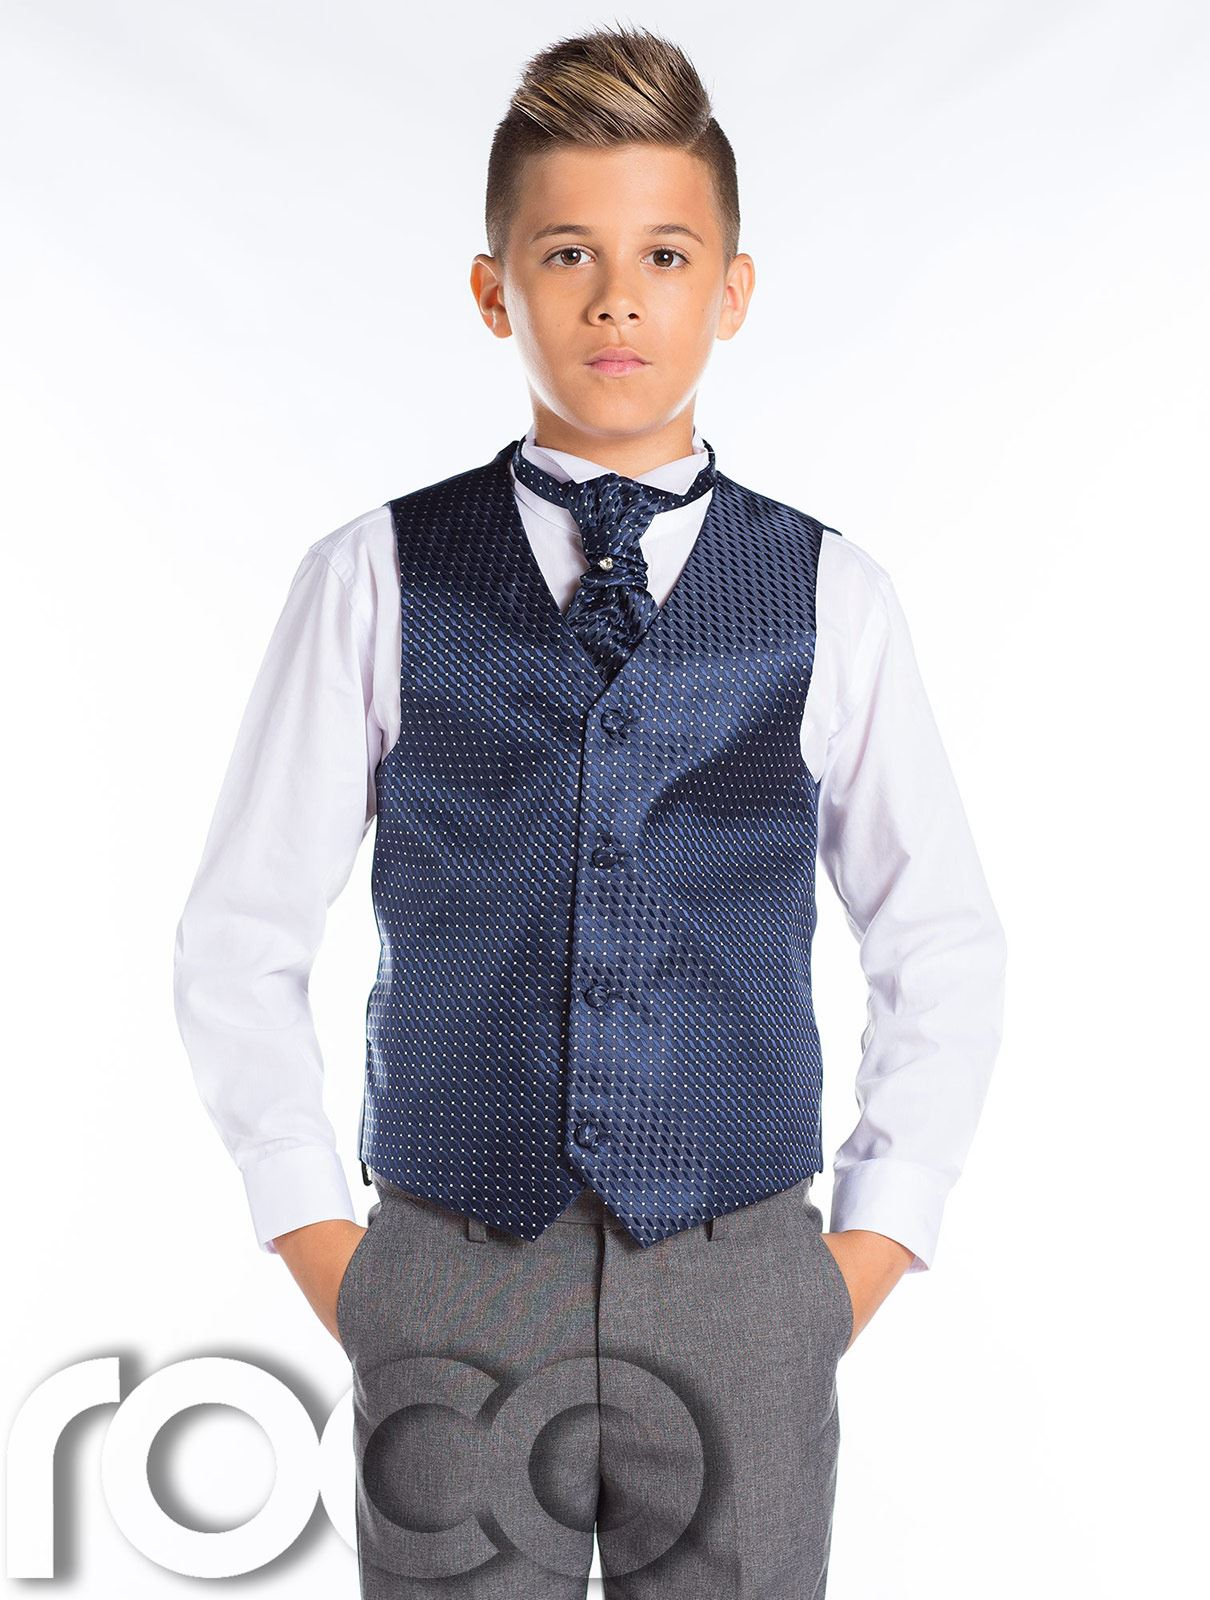 Boys Grey Suit, Boys Slim Fit Suit, Boys Prom Suit, Boys Wedding ...